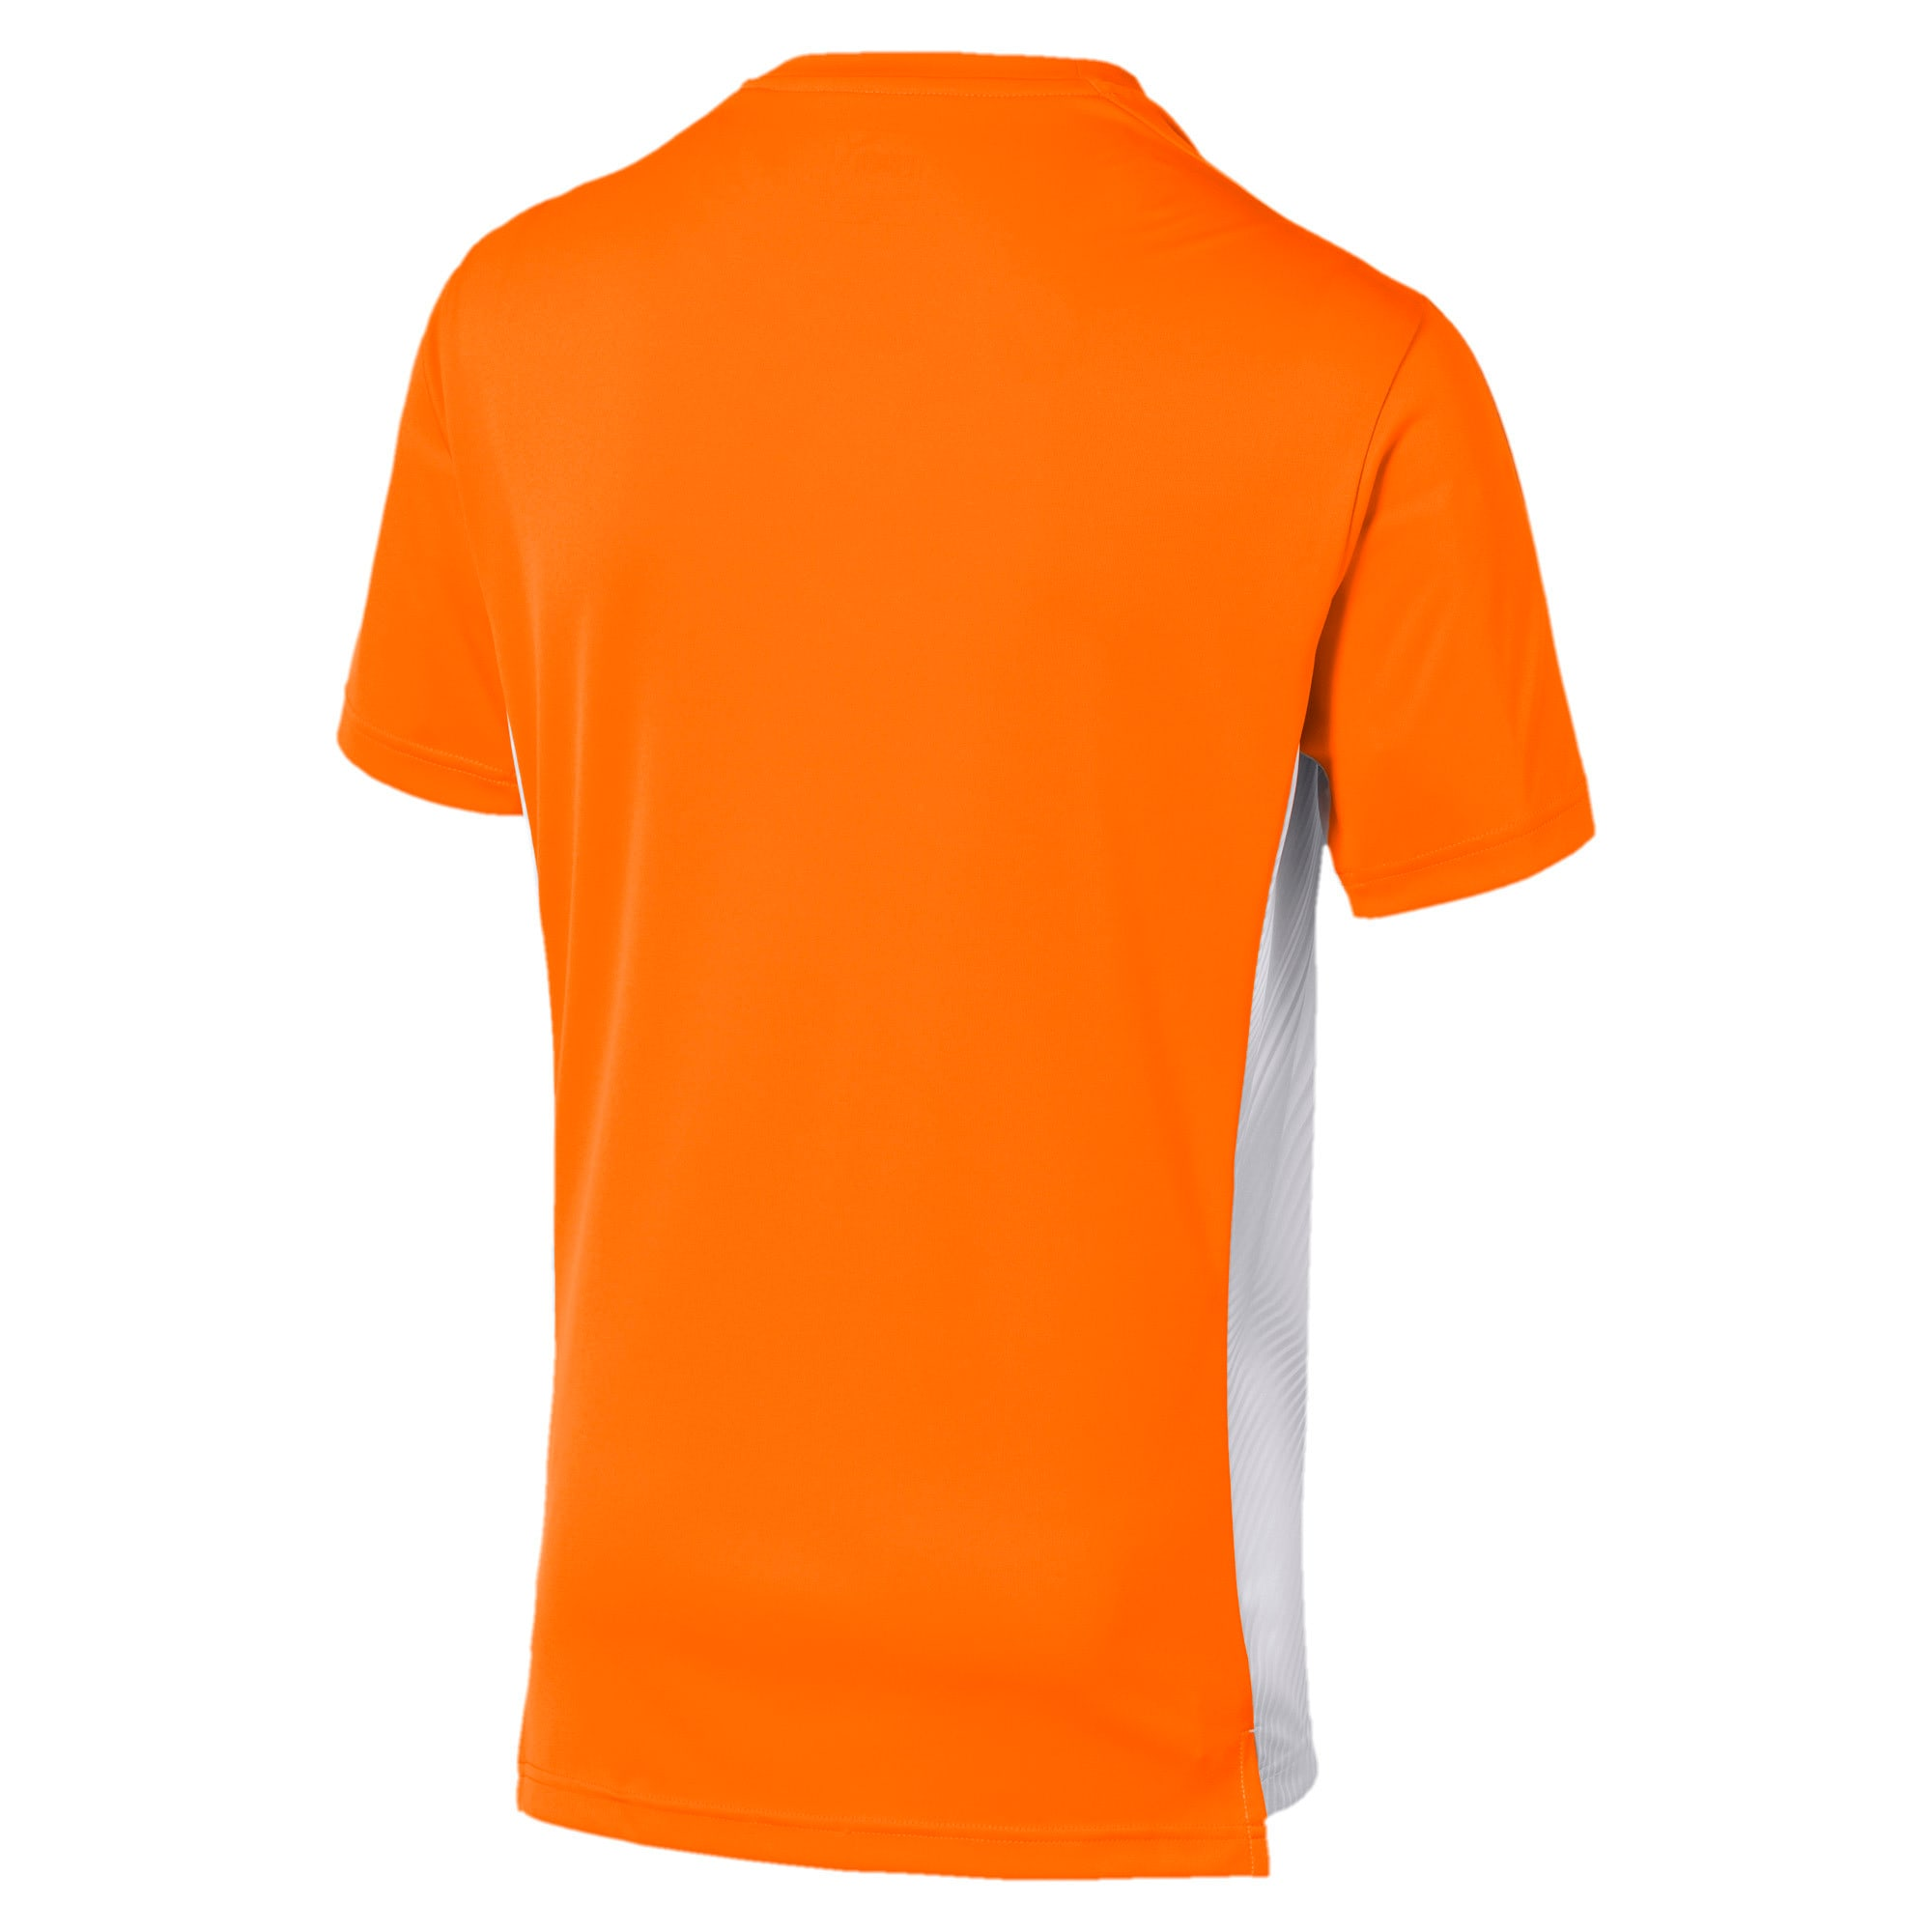 Thumbnail 2 of Valencia CF Men's Stadium Jersey, Vibrant Orange-Puma White, medium